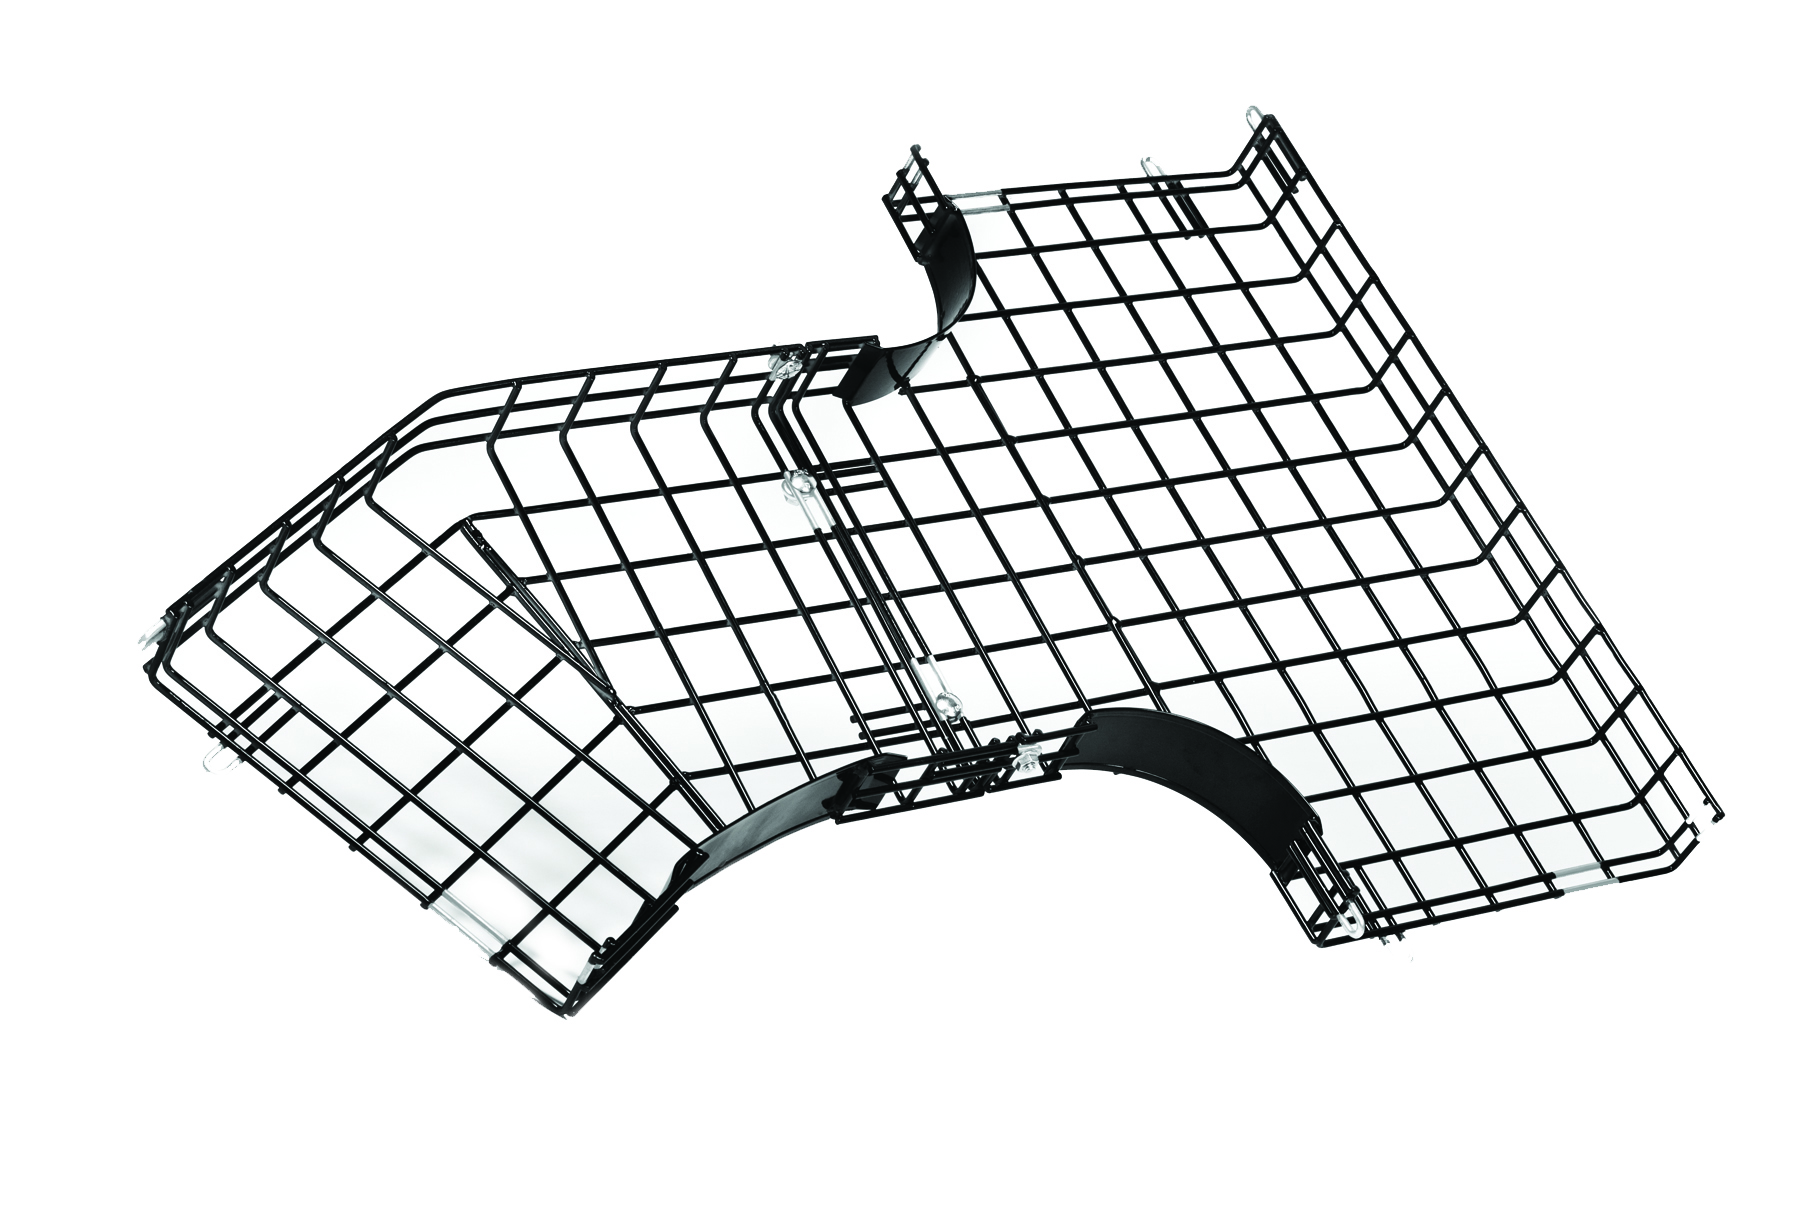 quickturn u2122 basket tray system reduces installation time